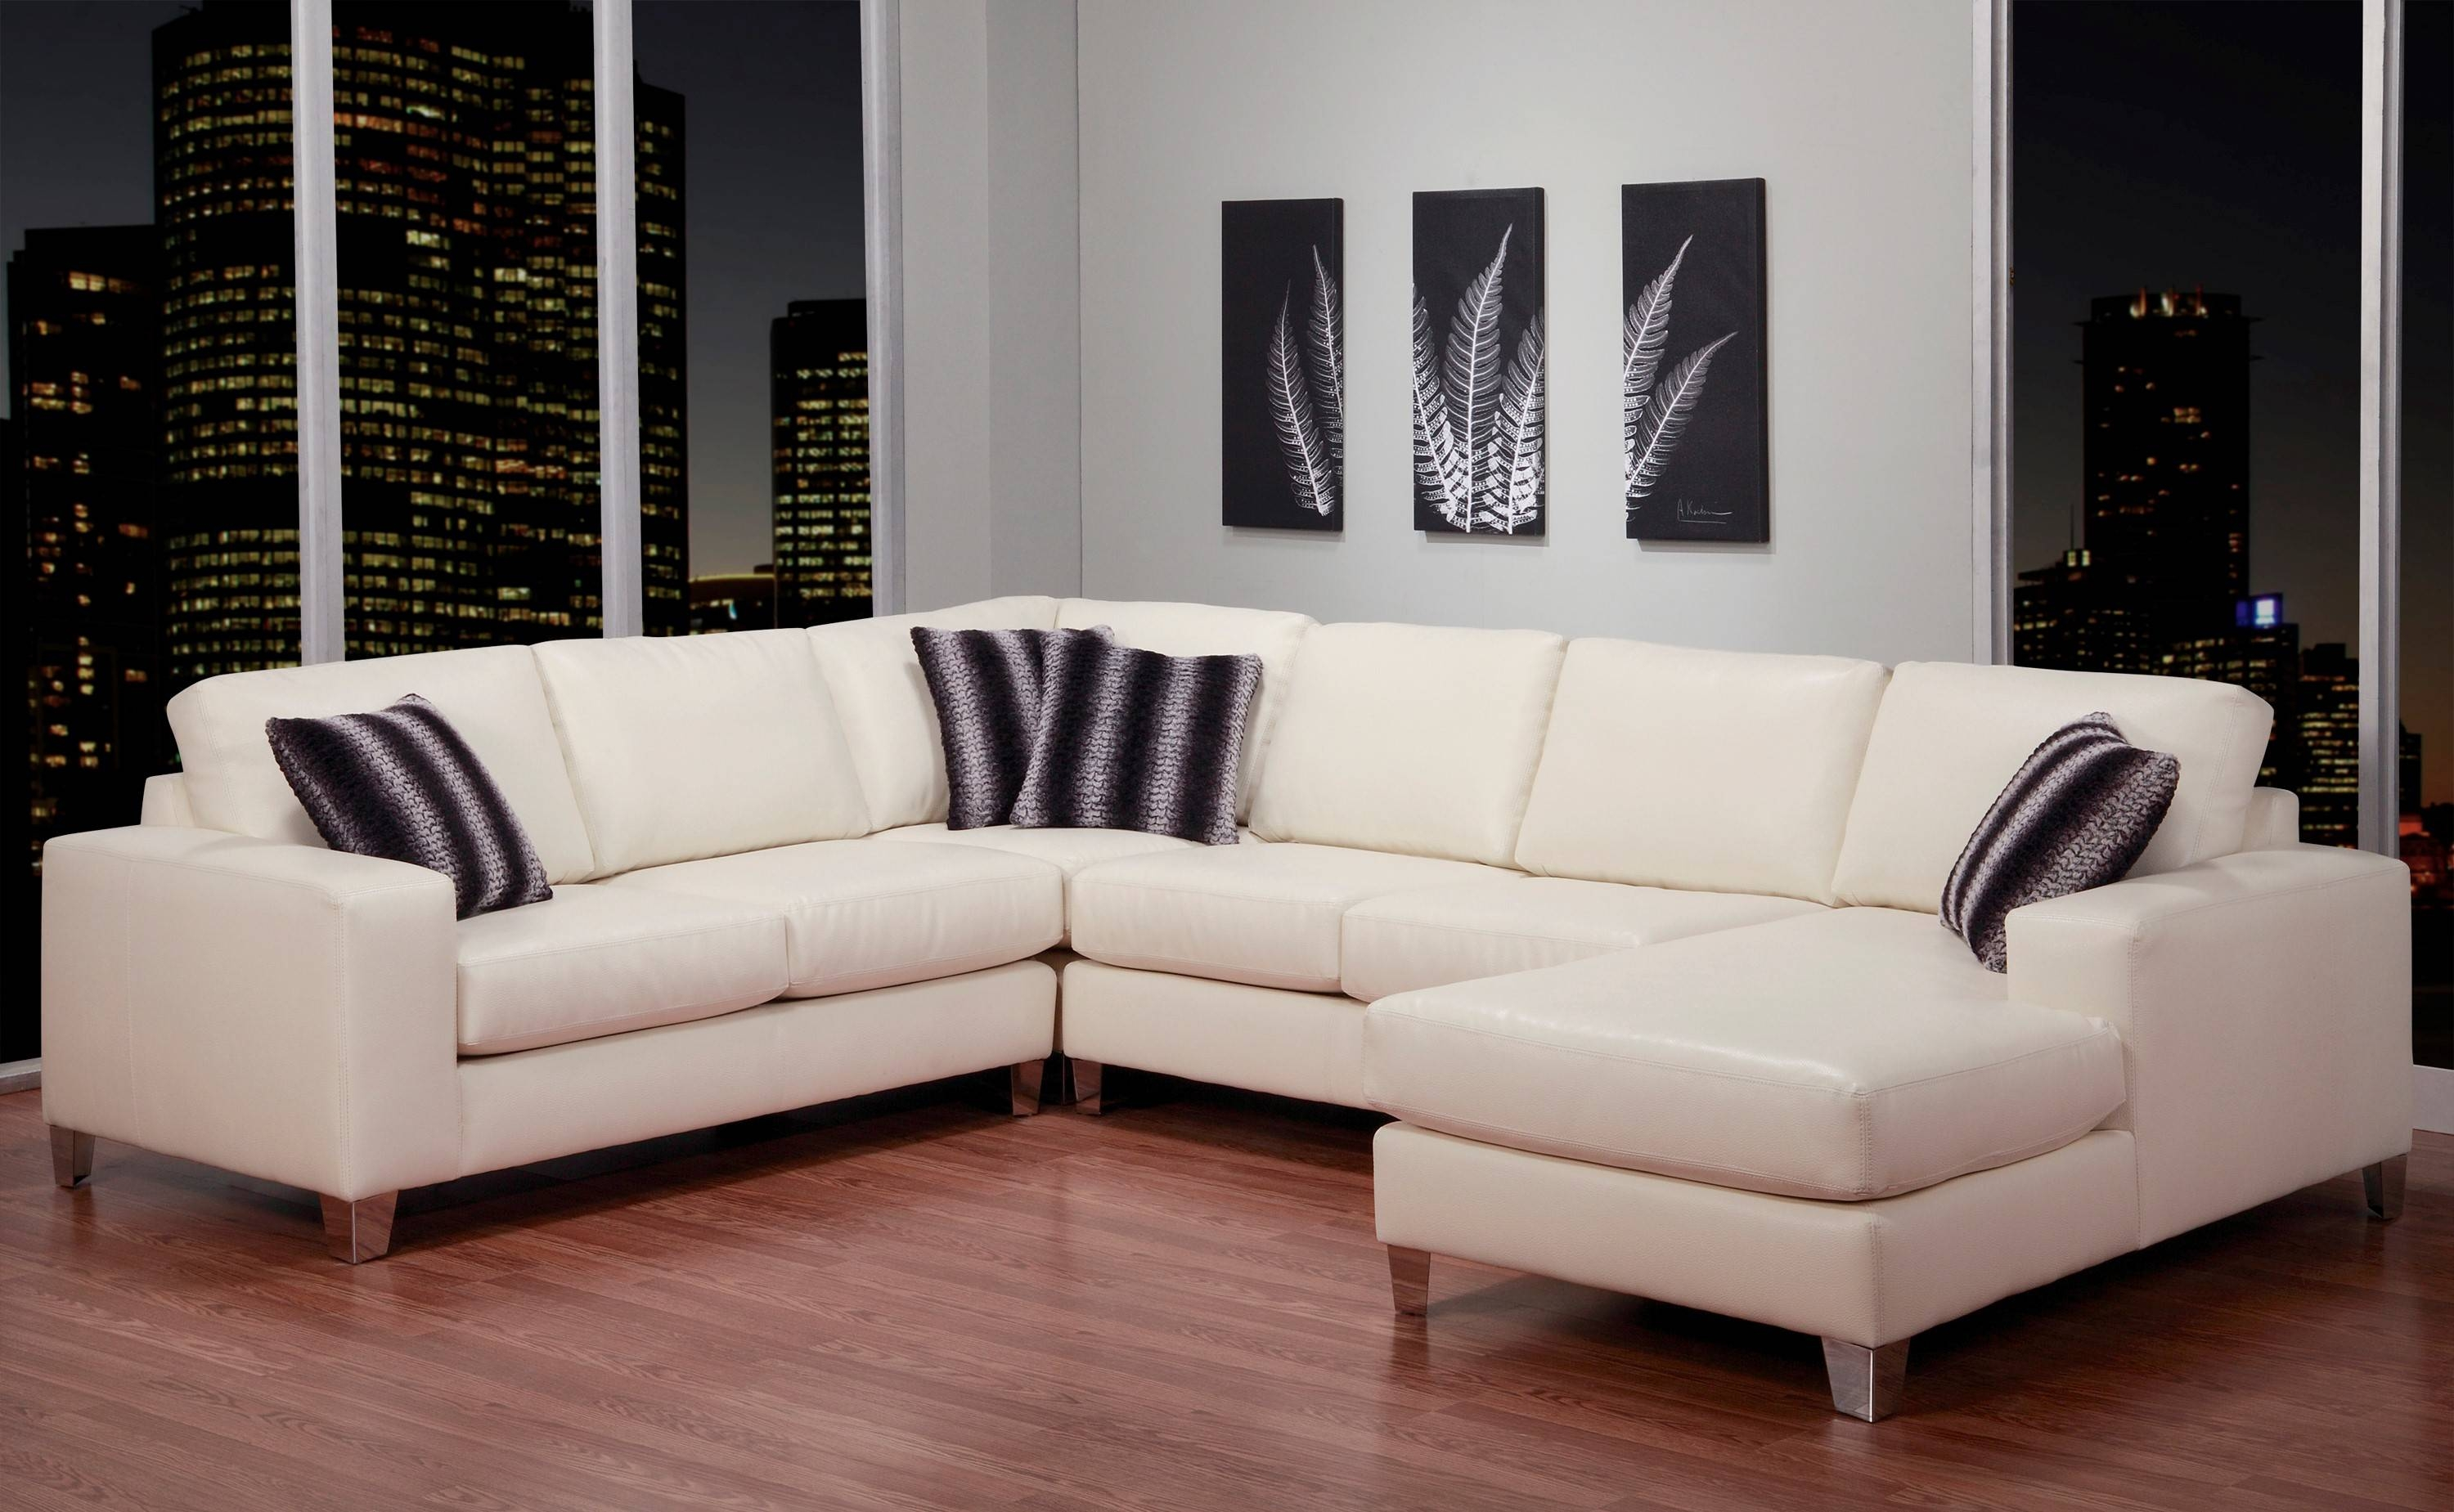 Sectional Sofa Leather Toronto | Tehranmix Decoration with regard to Leather Sectional Sofas Toronto (Image 15 of 25)